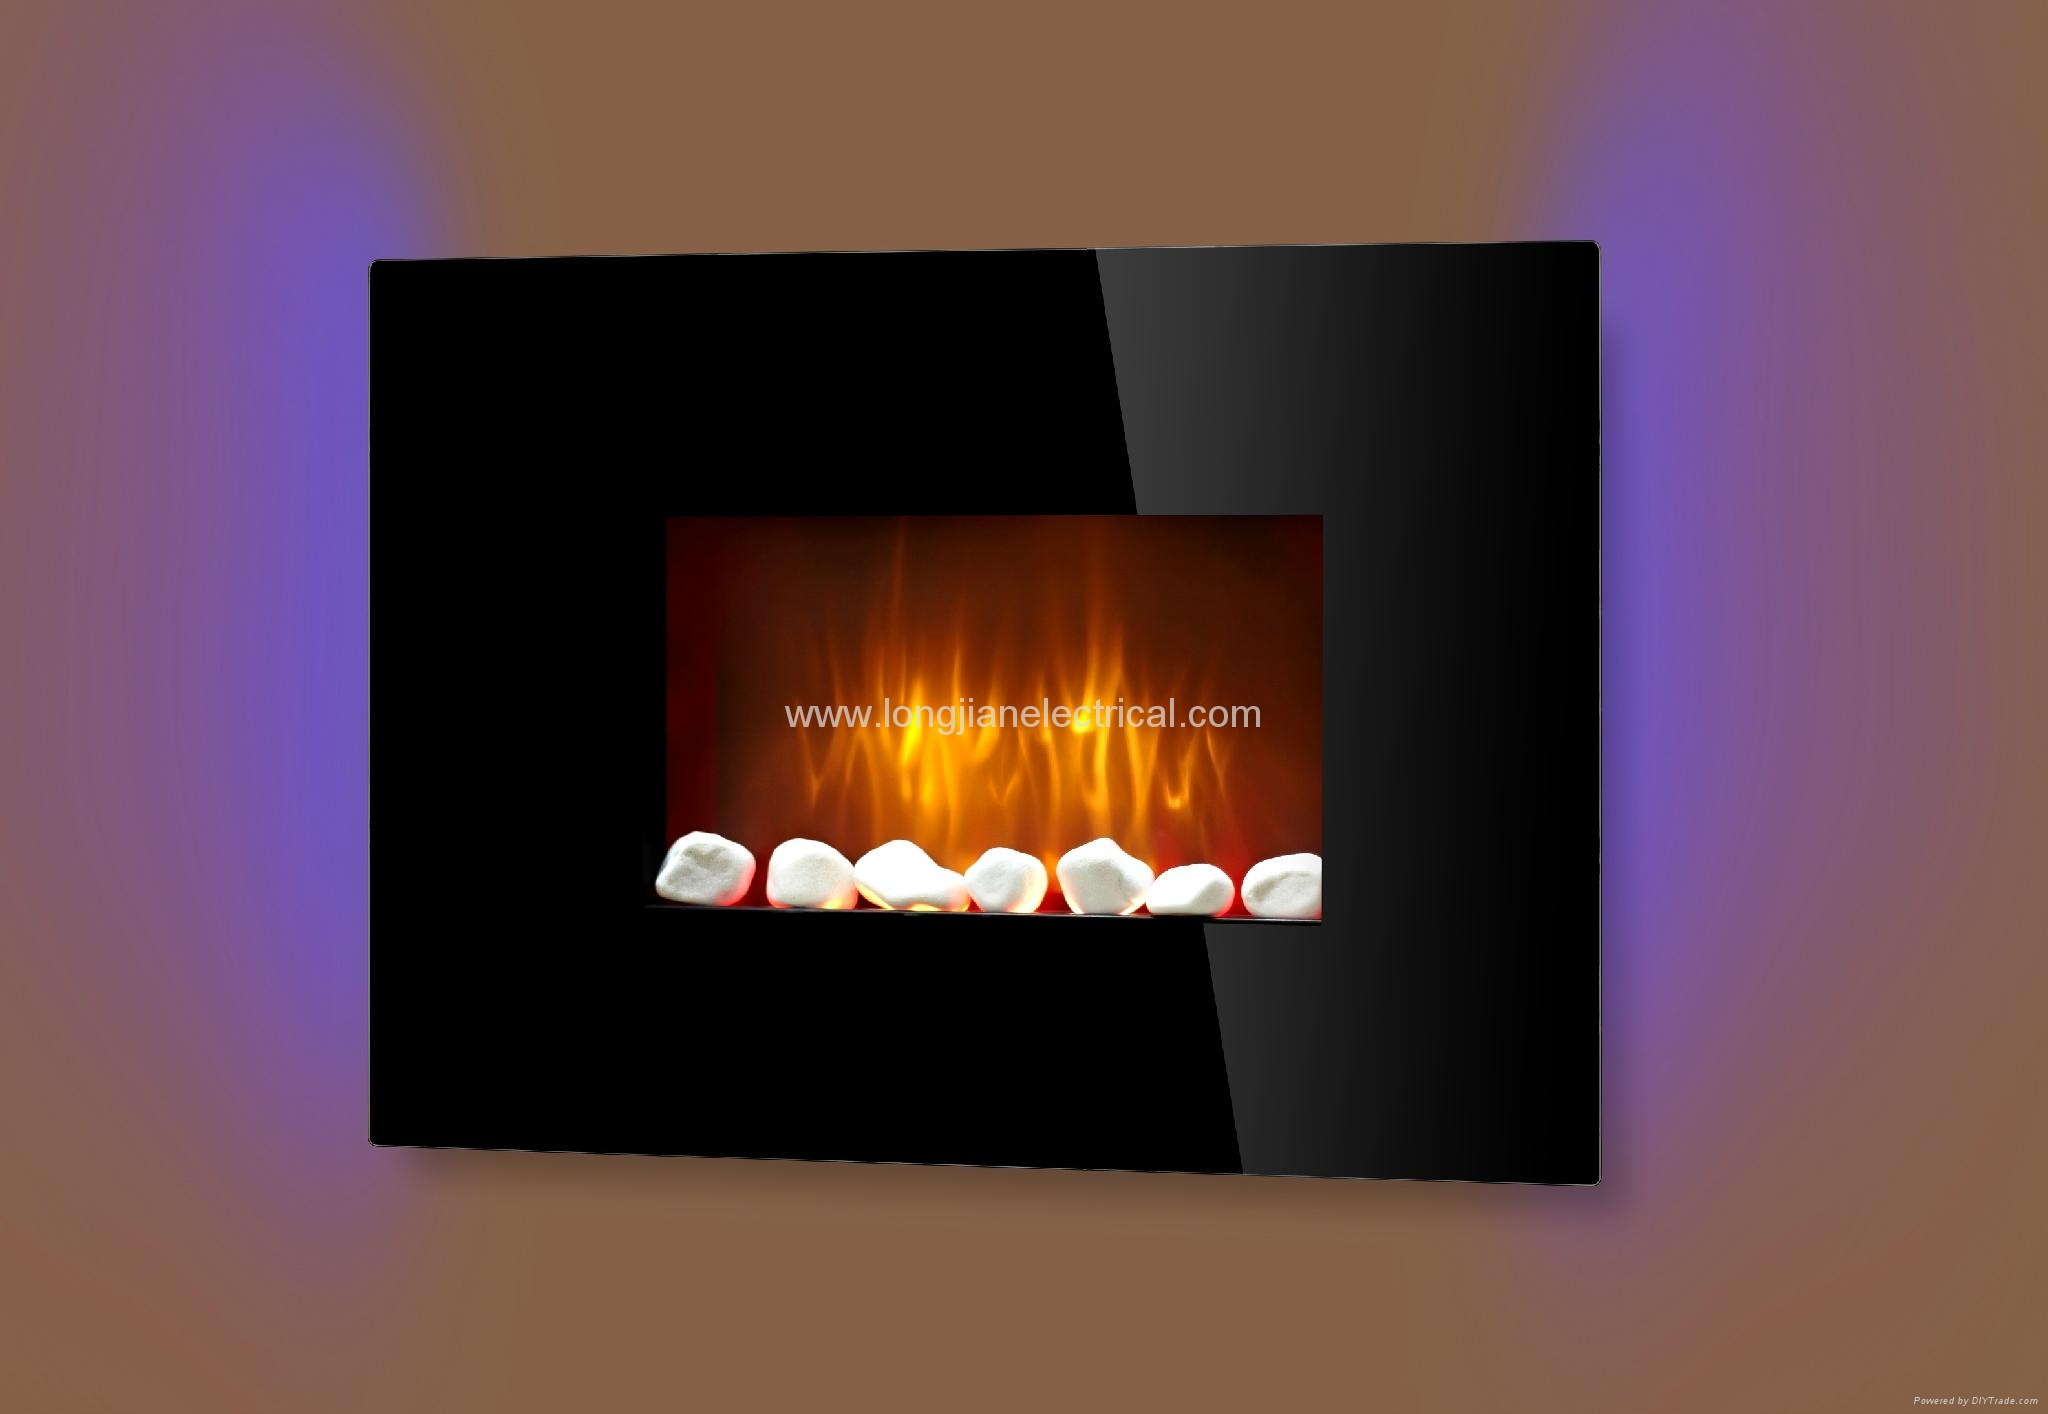 LED Electric Wall Mounted Fireplace Fan Heater with Remote Control LJHF3702E 2